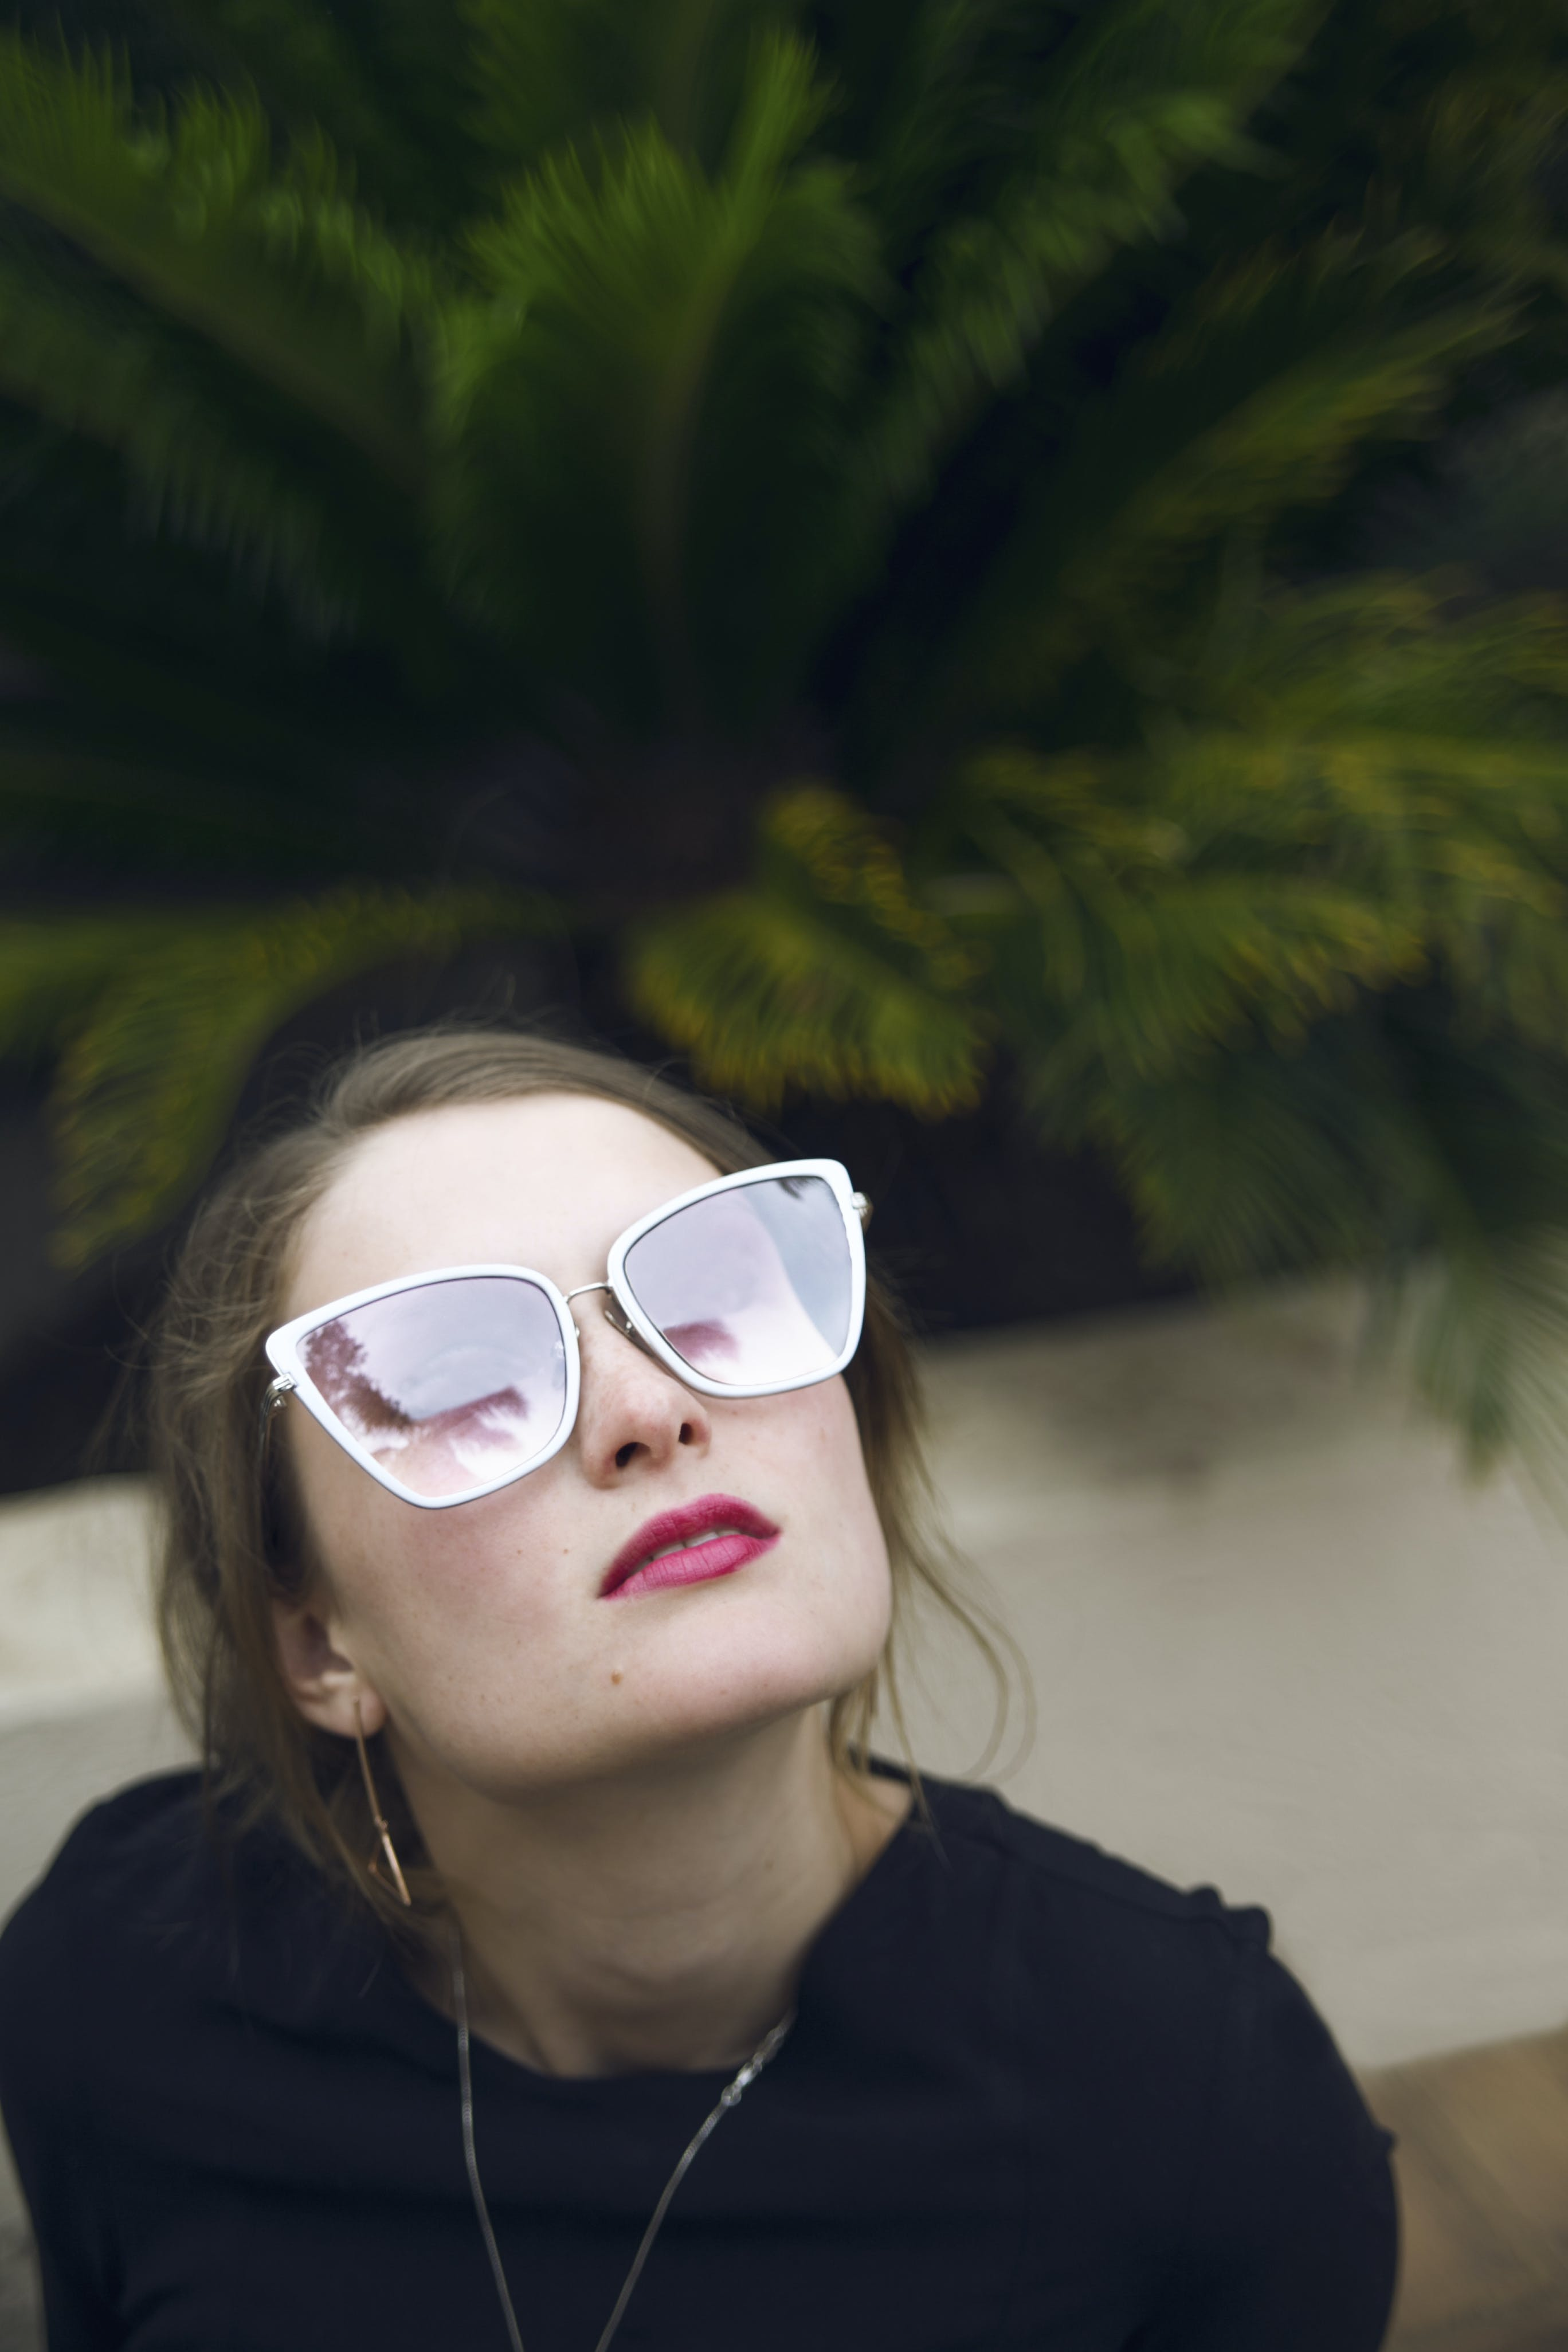 Photo of Woman Wearing Black Top and Sunglasses